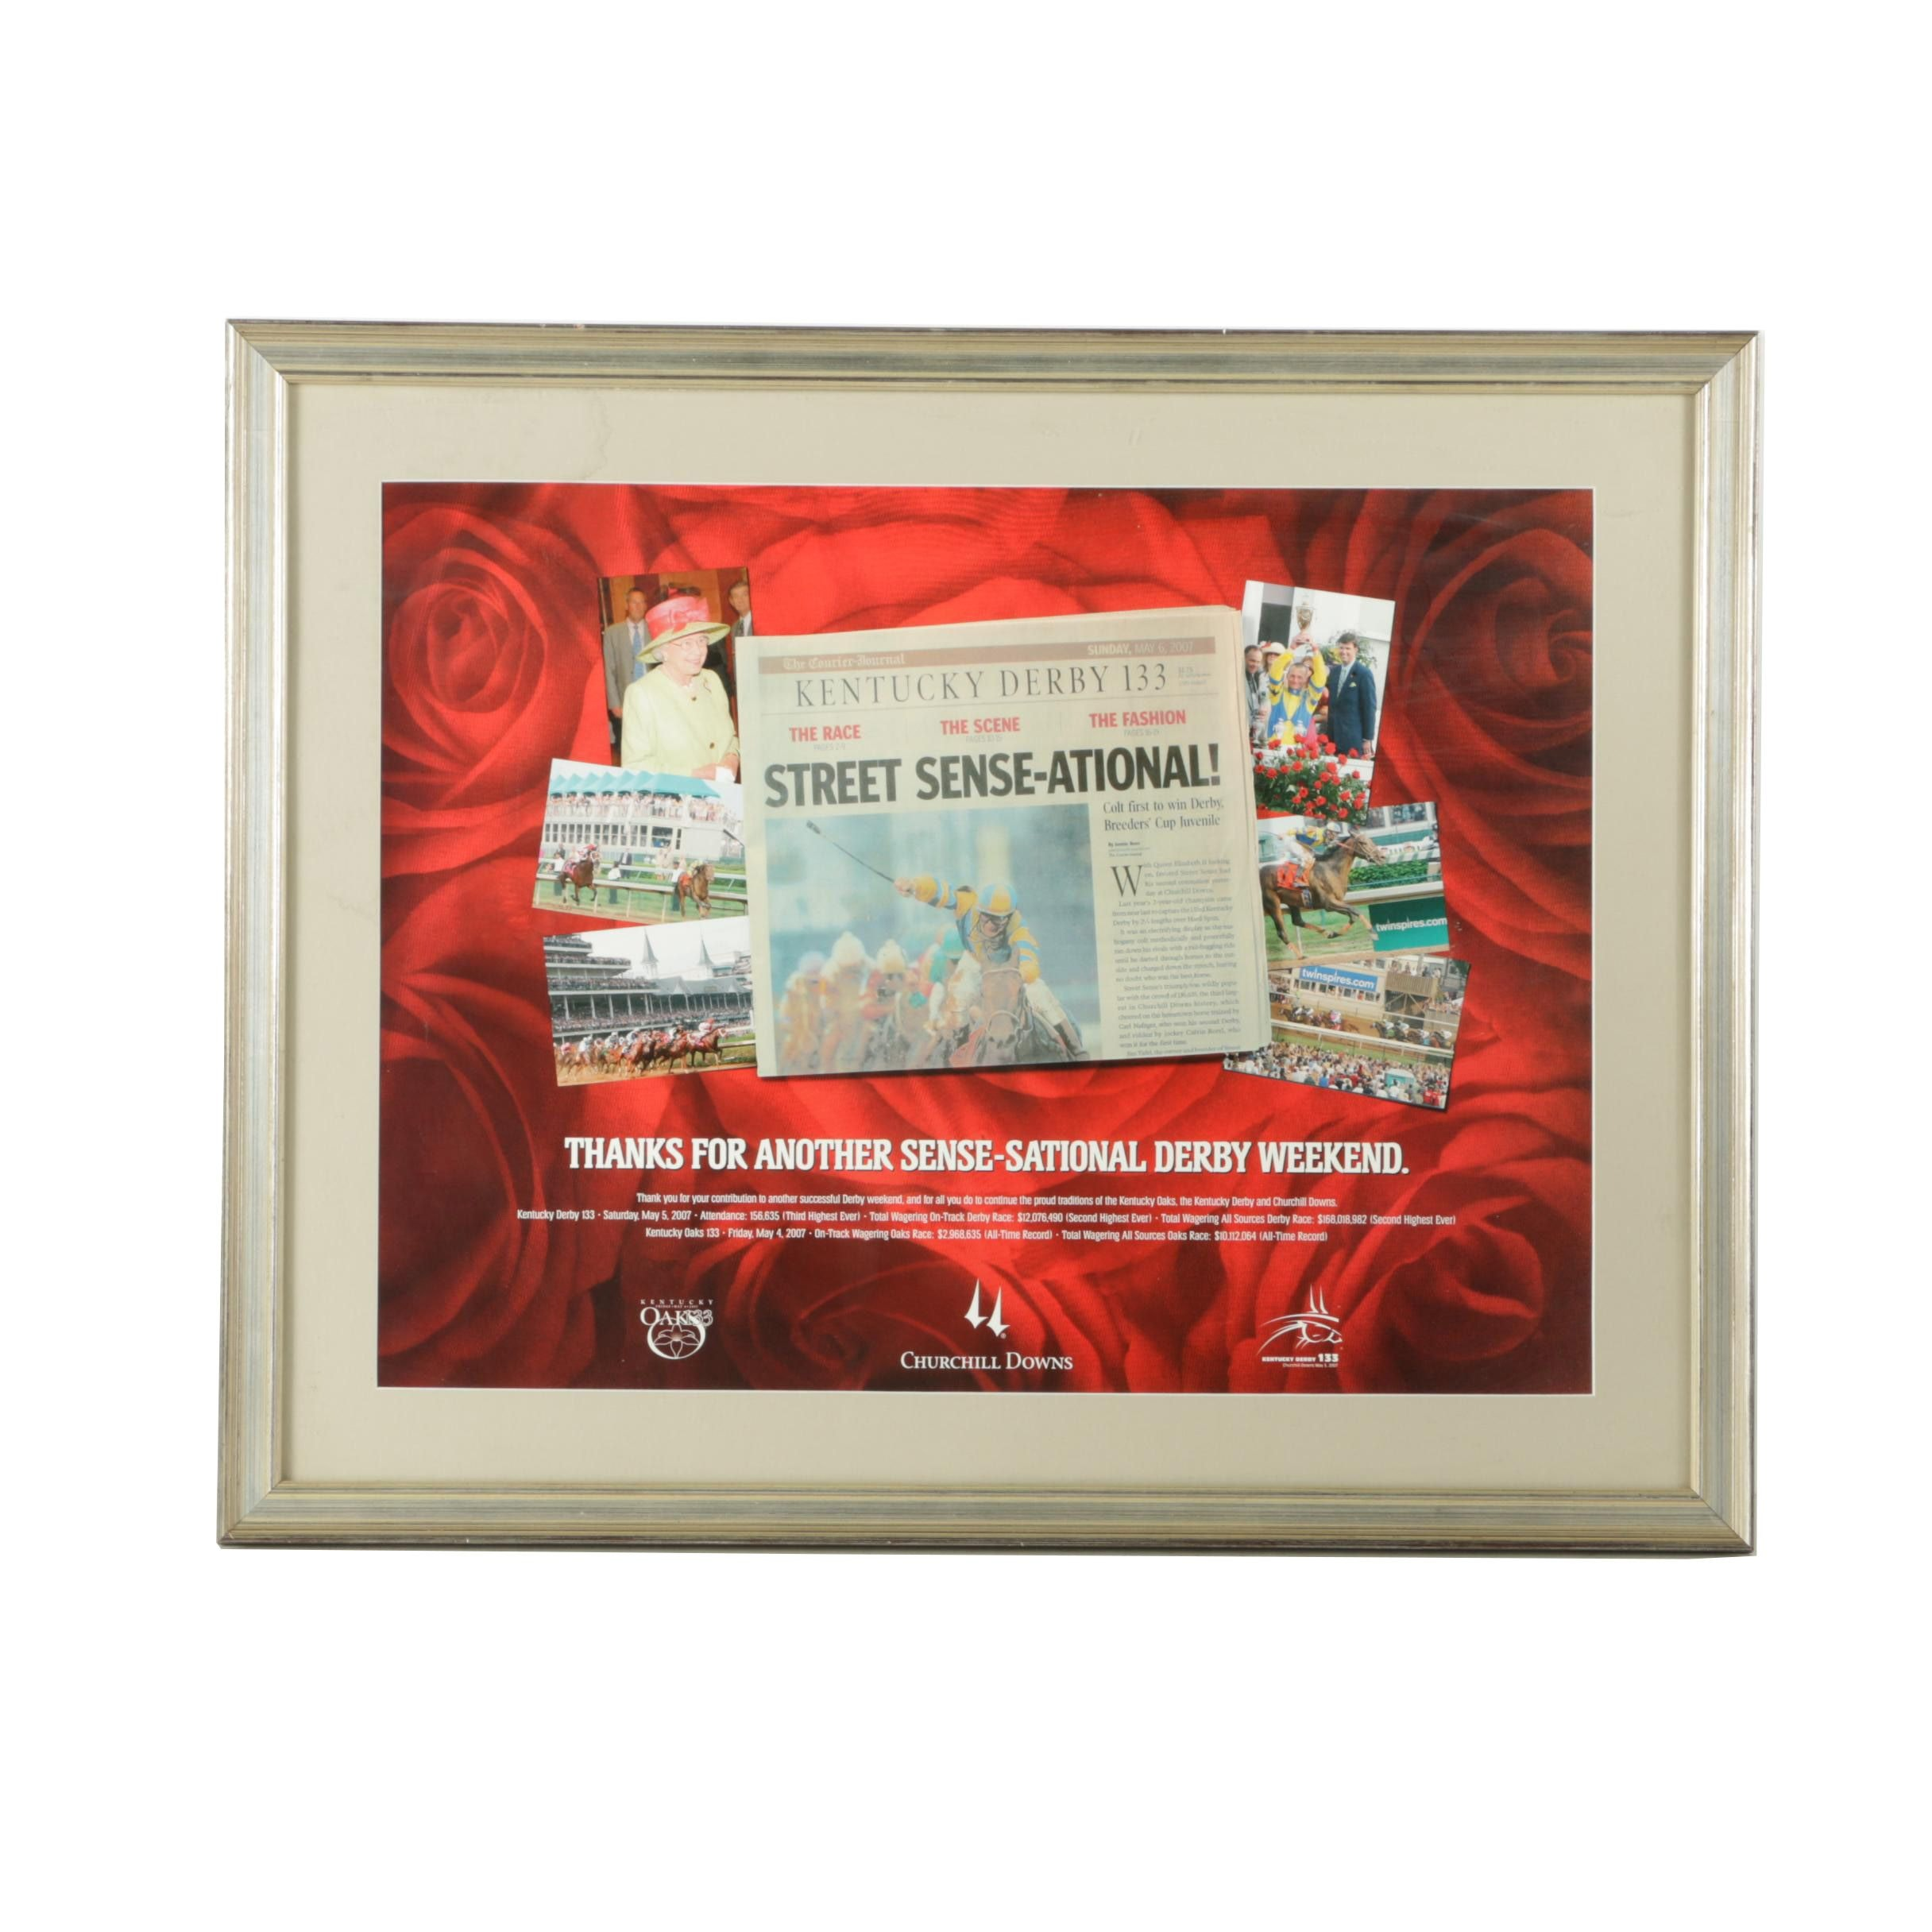 Commemorative 2007 Kentucky Derby and Oaks Poster in Frame